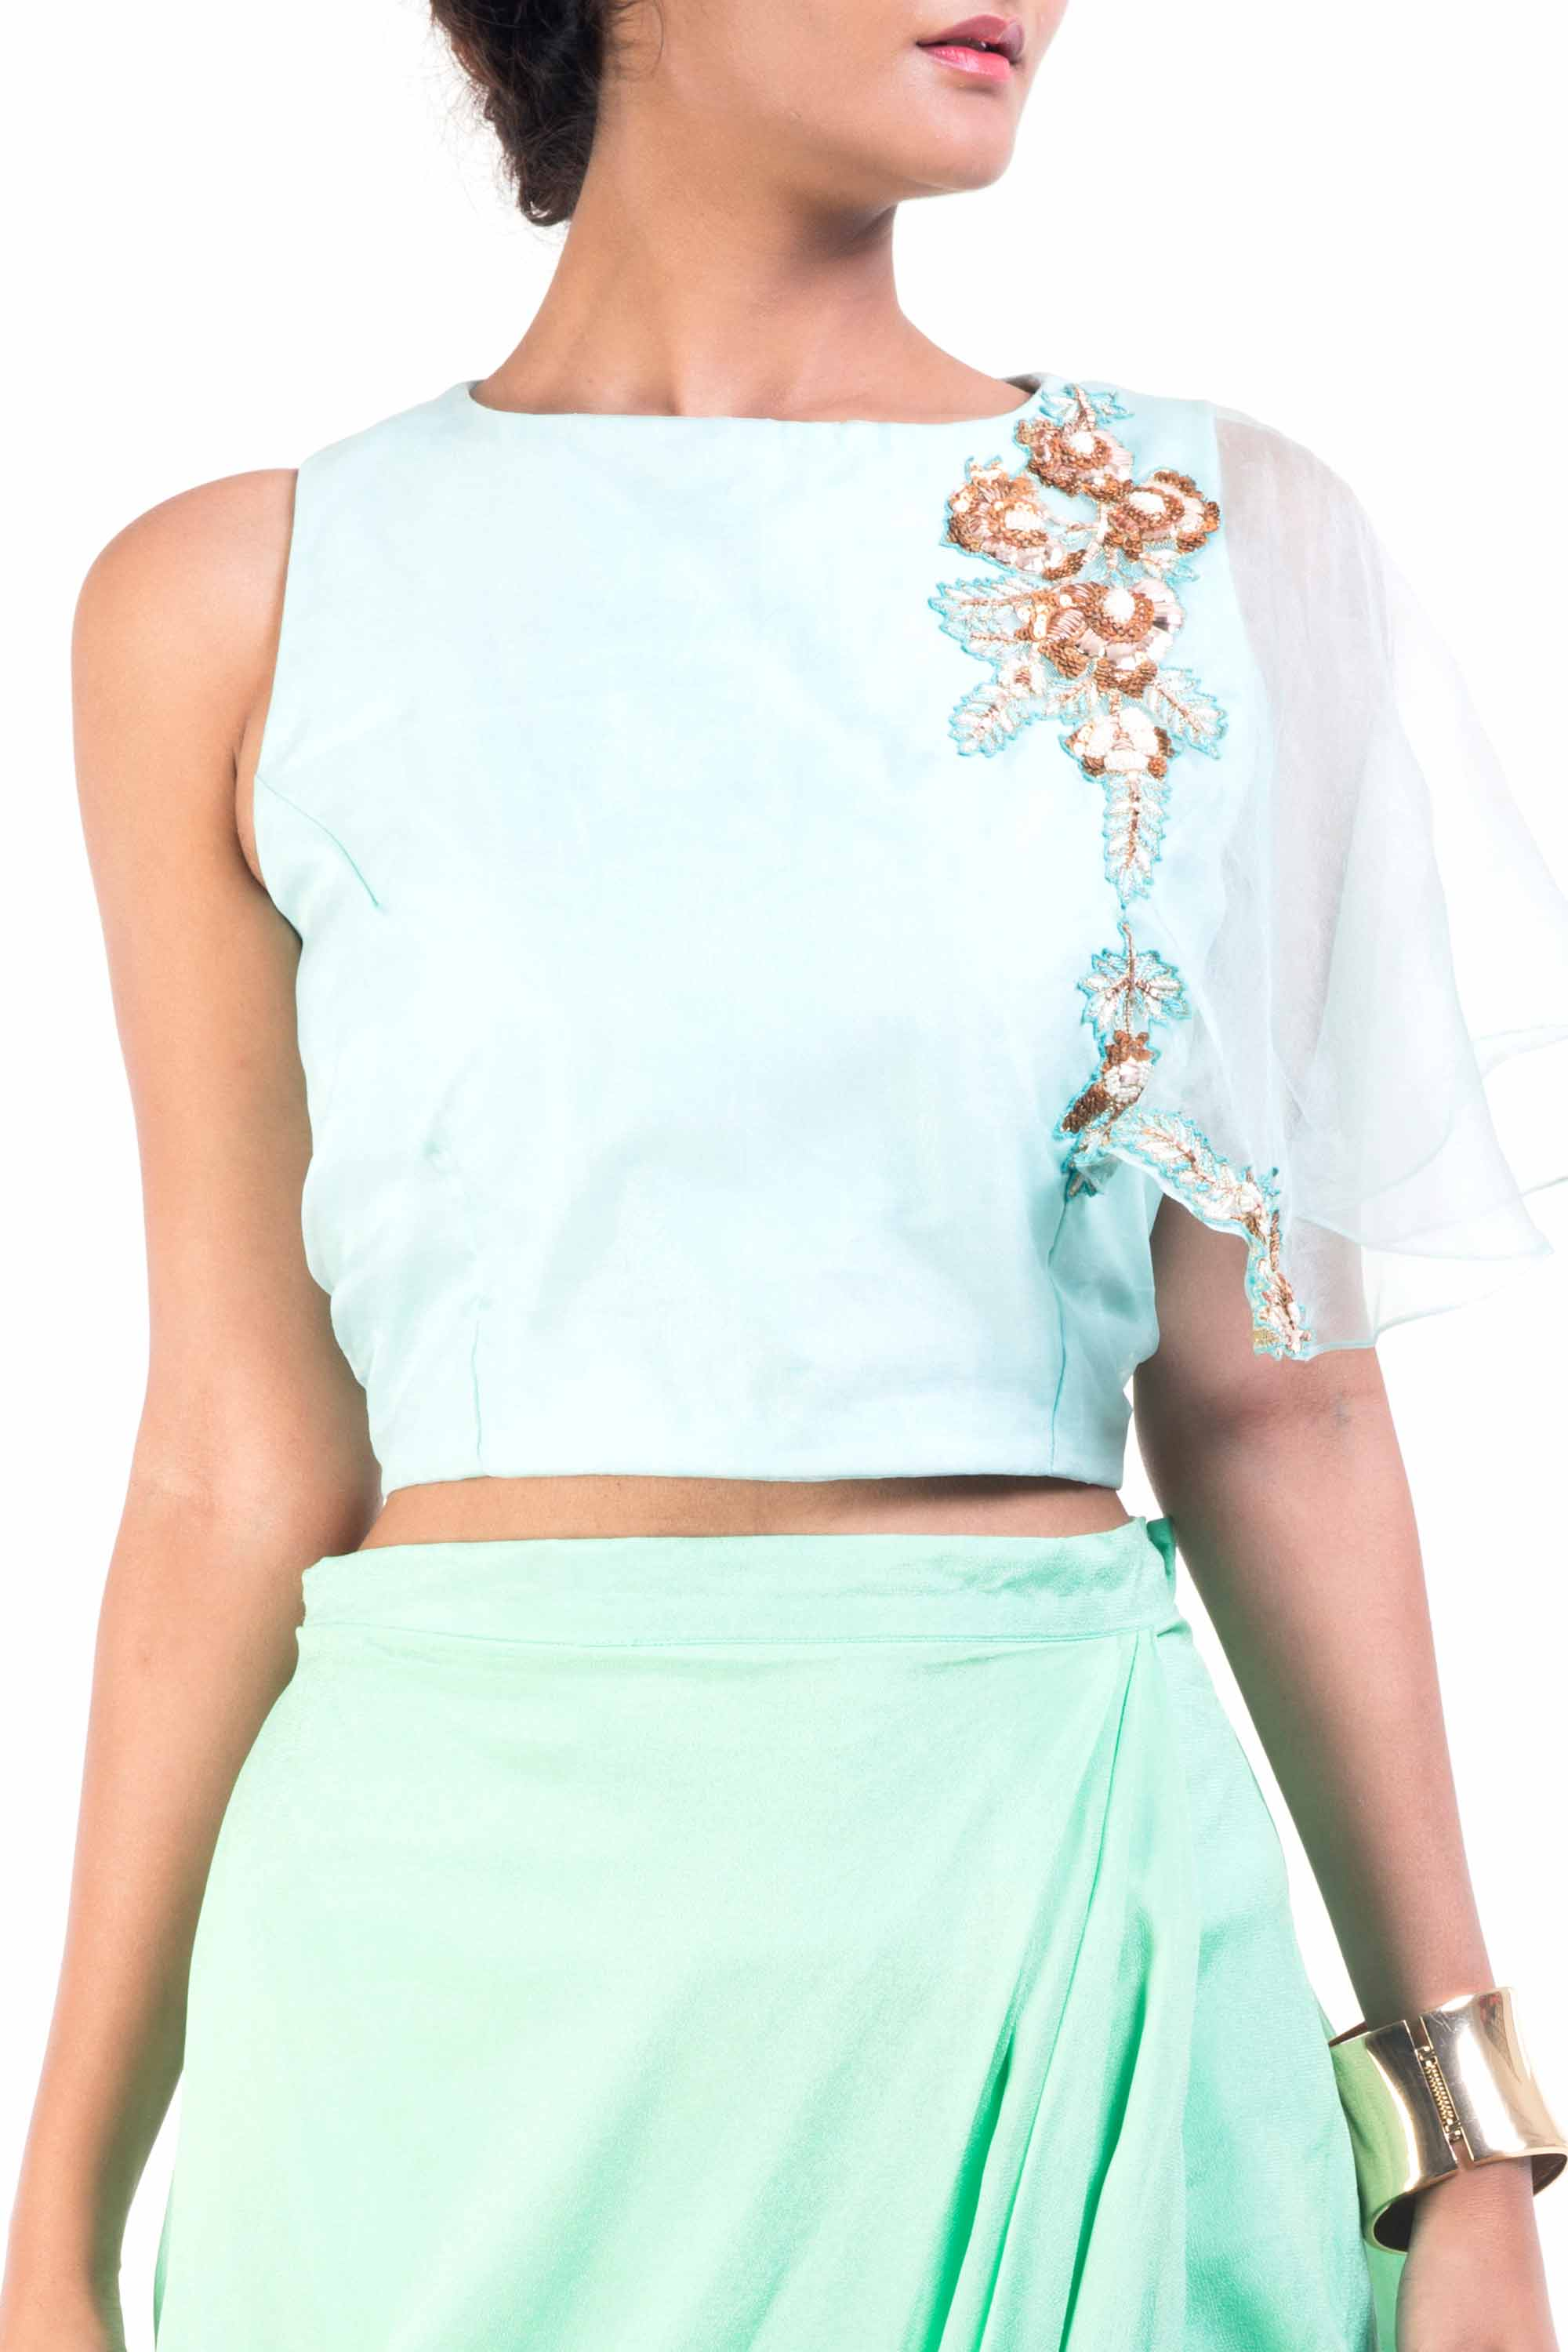 Sky Blue Cape-Cropper With Aqua Dhoti Wrap Skirt Closeup